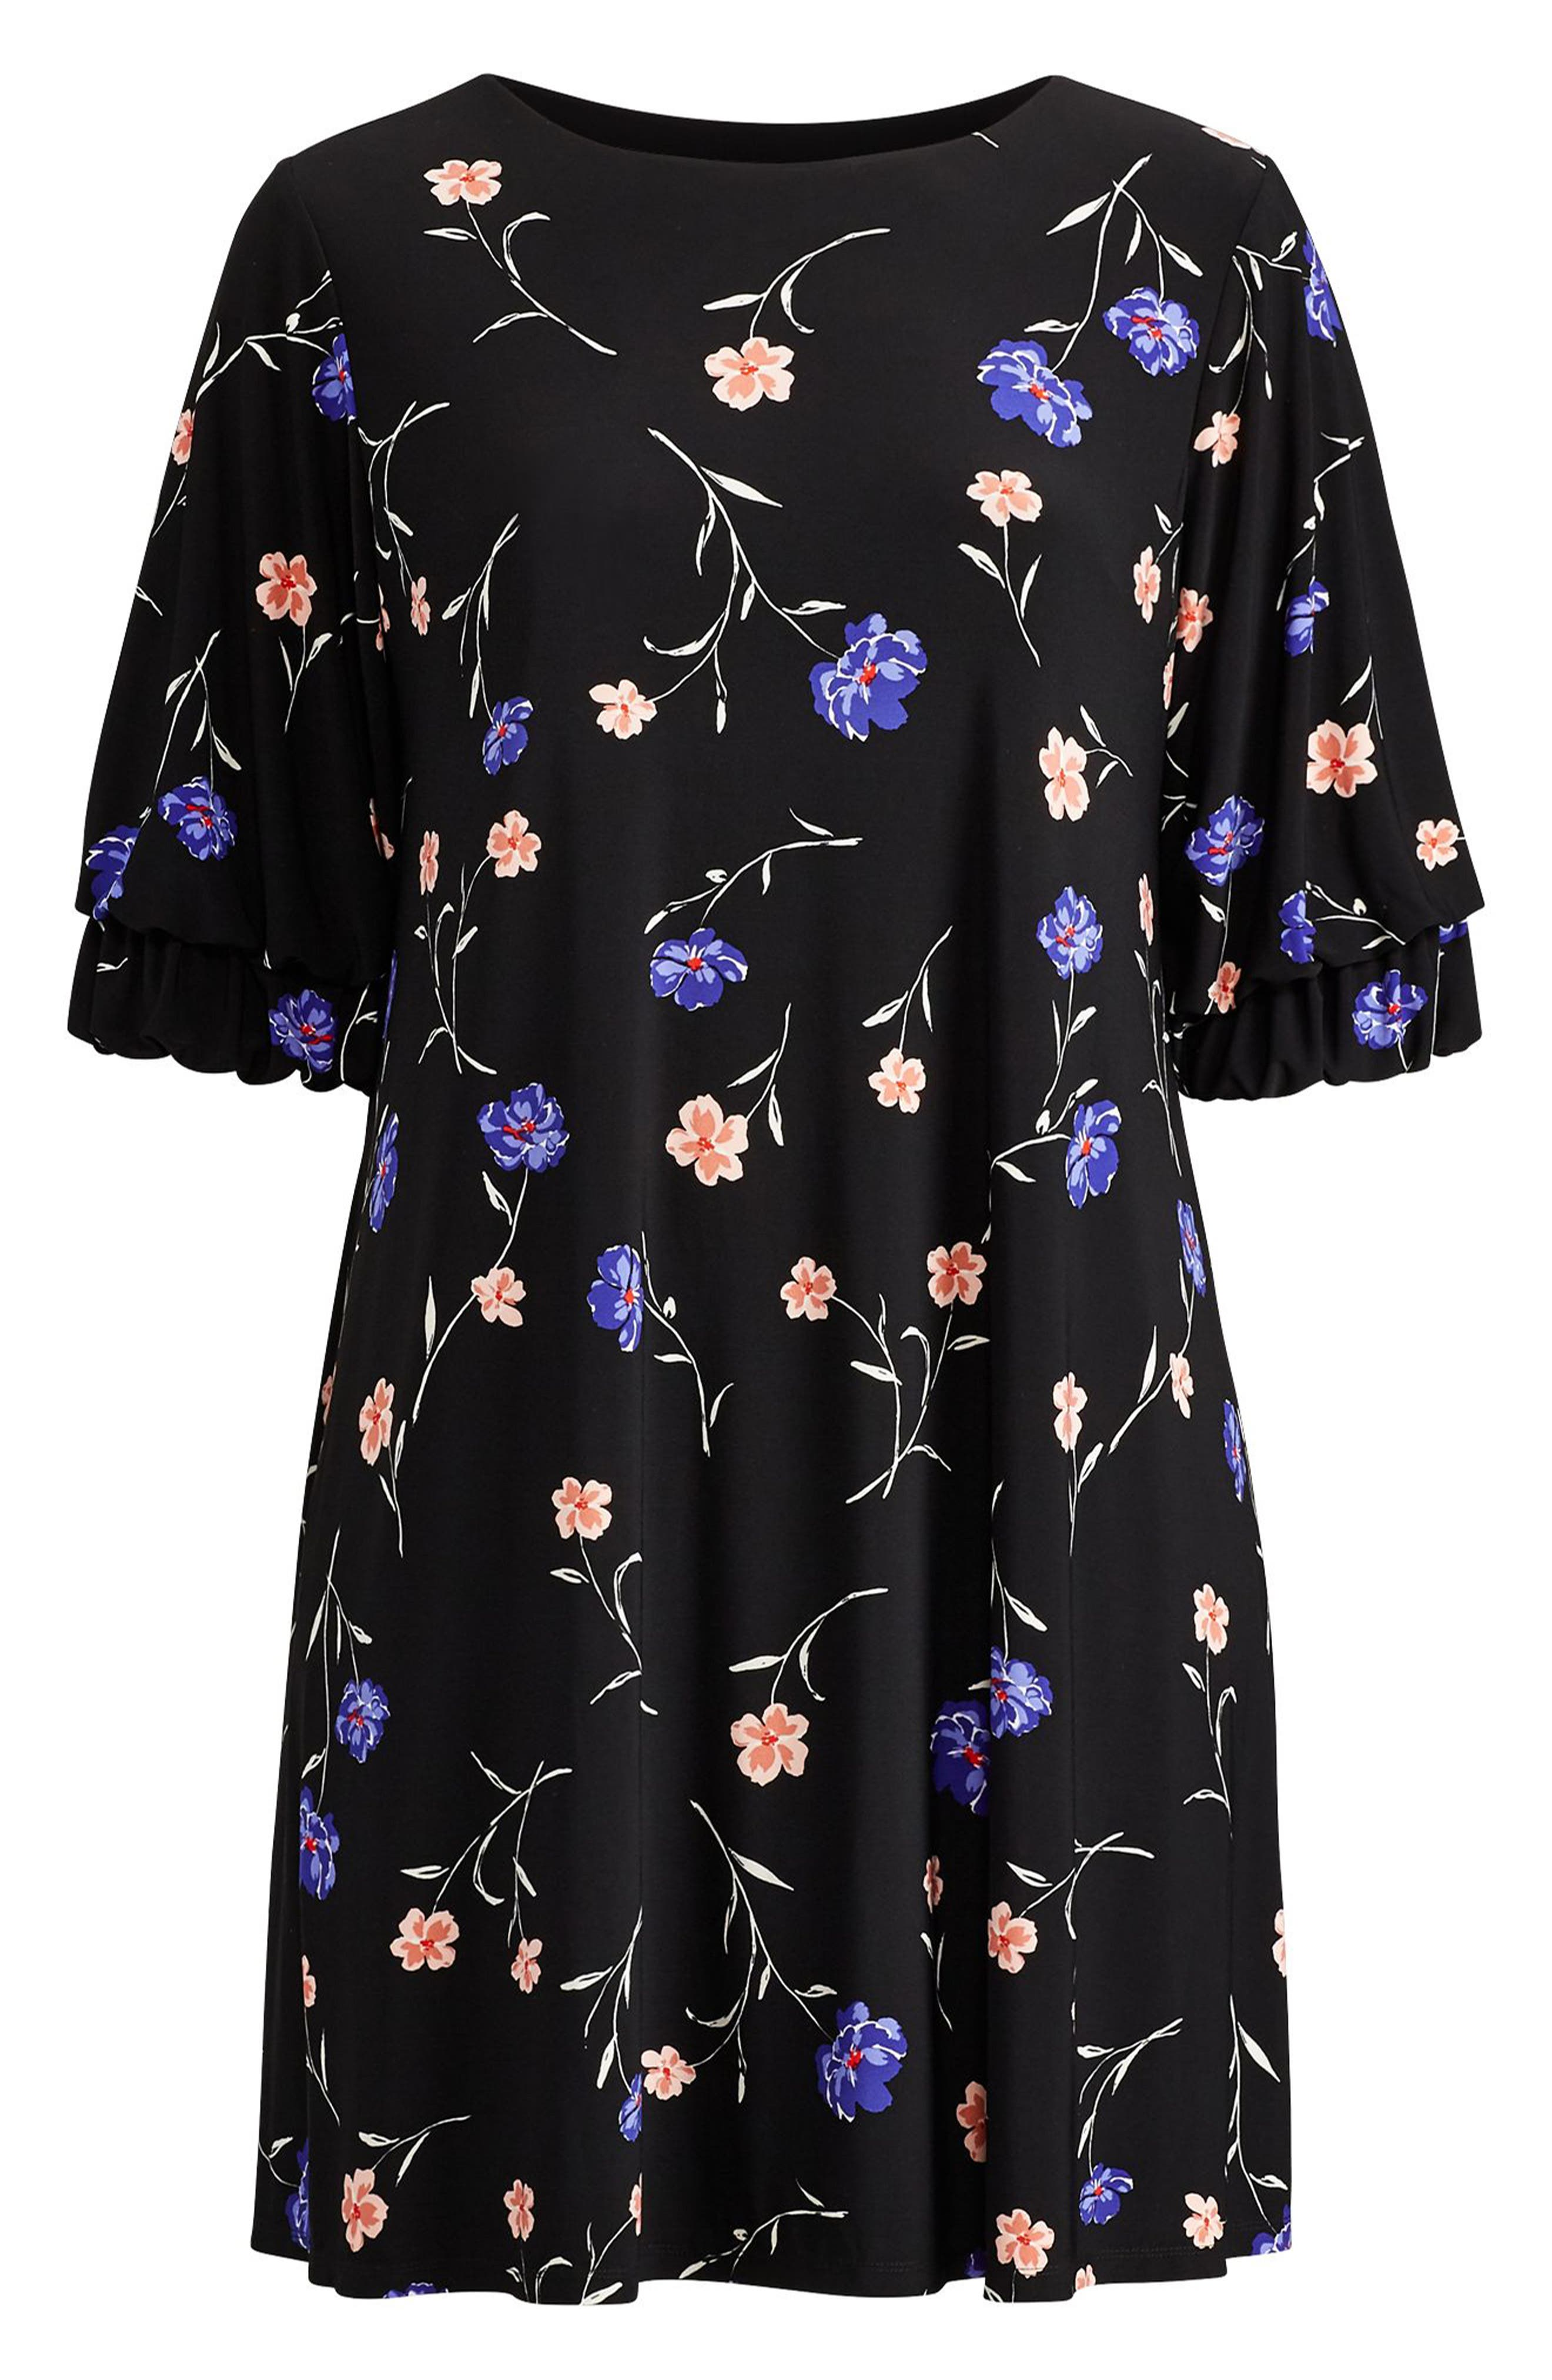 Ruffle Sleeve Floral Print Dress,                             Alternate thumbnail 3, color,                             Black-Blue-Multi